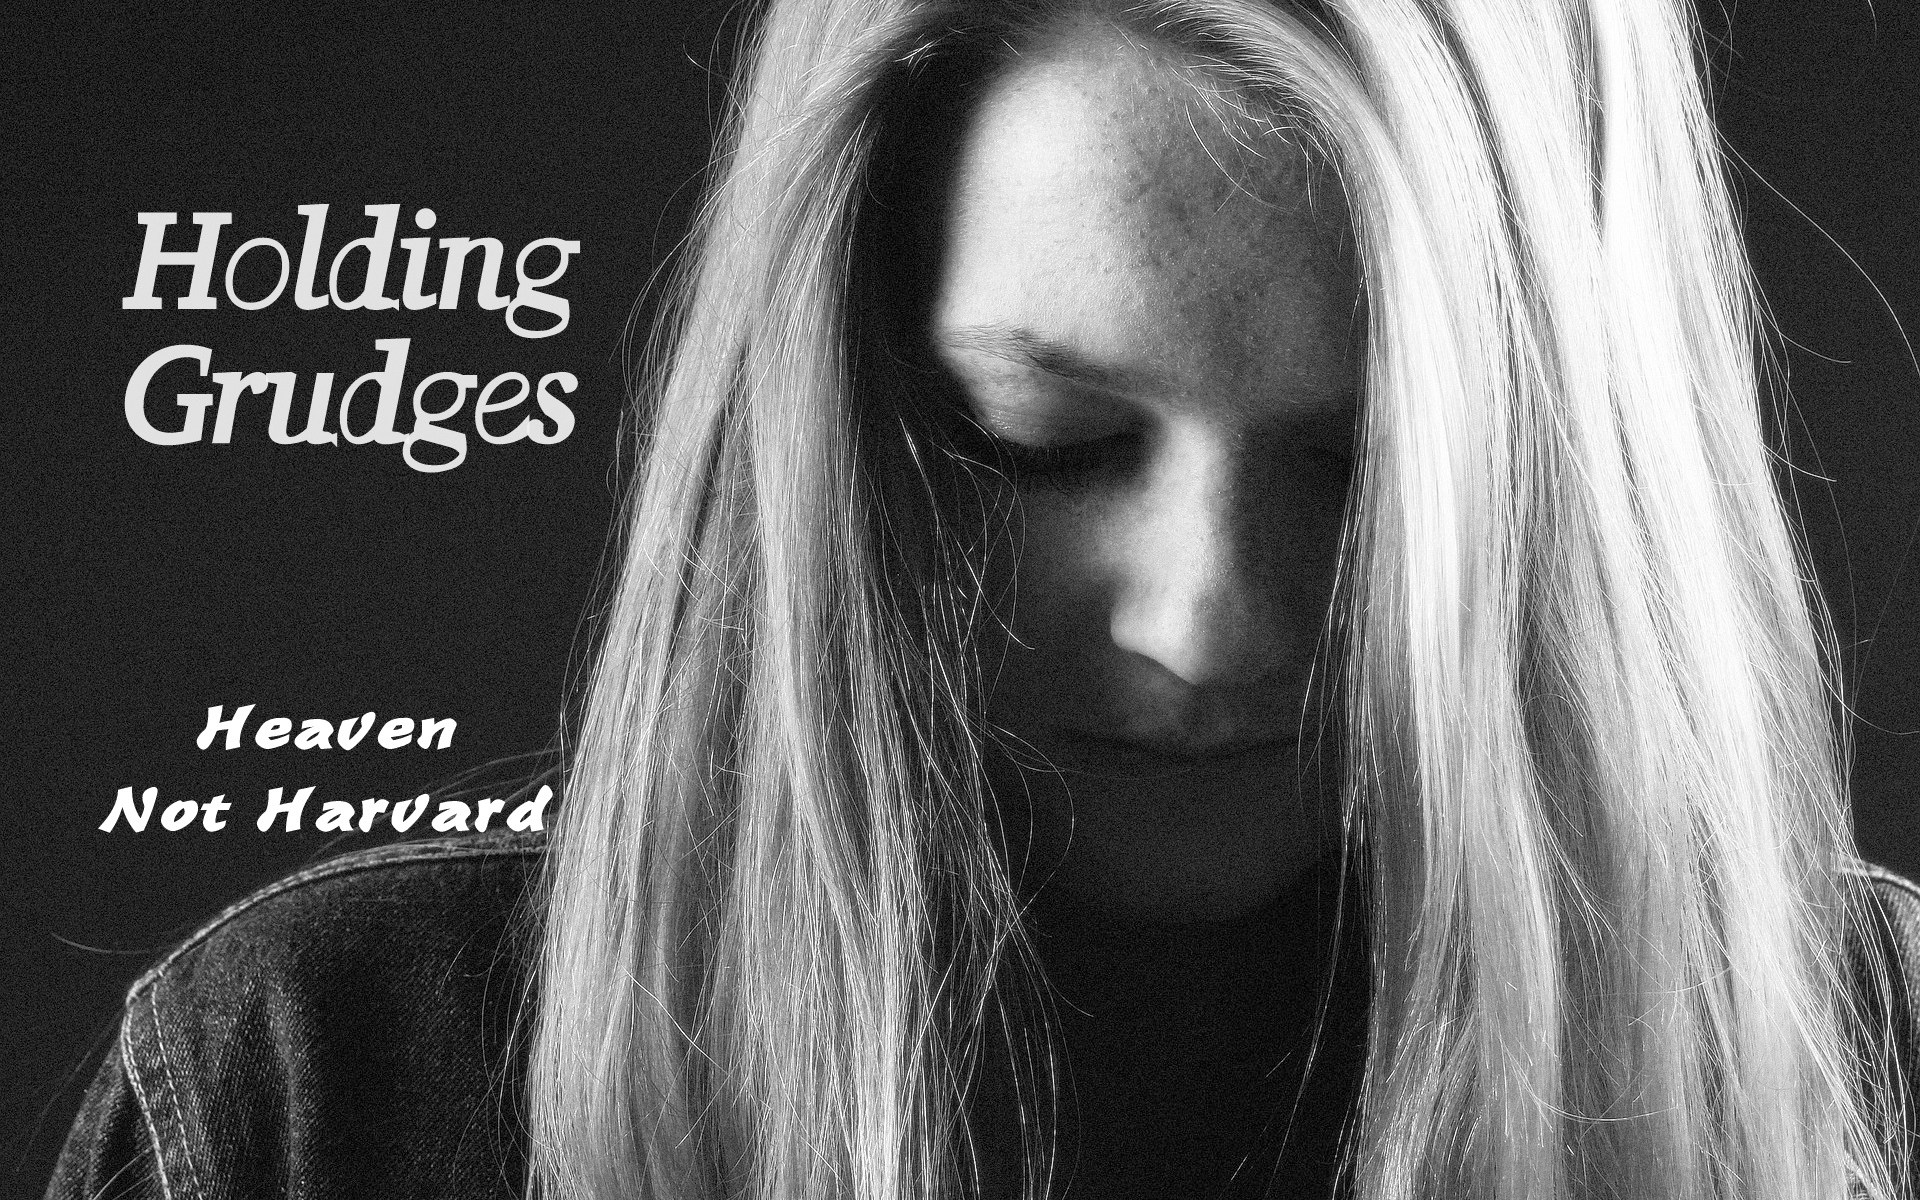 Are you holding grudges? Is there a hurt you can't let go? What does the Bible say about moving past those rejections to forgiveness?